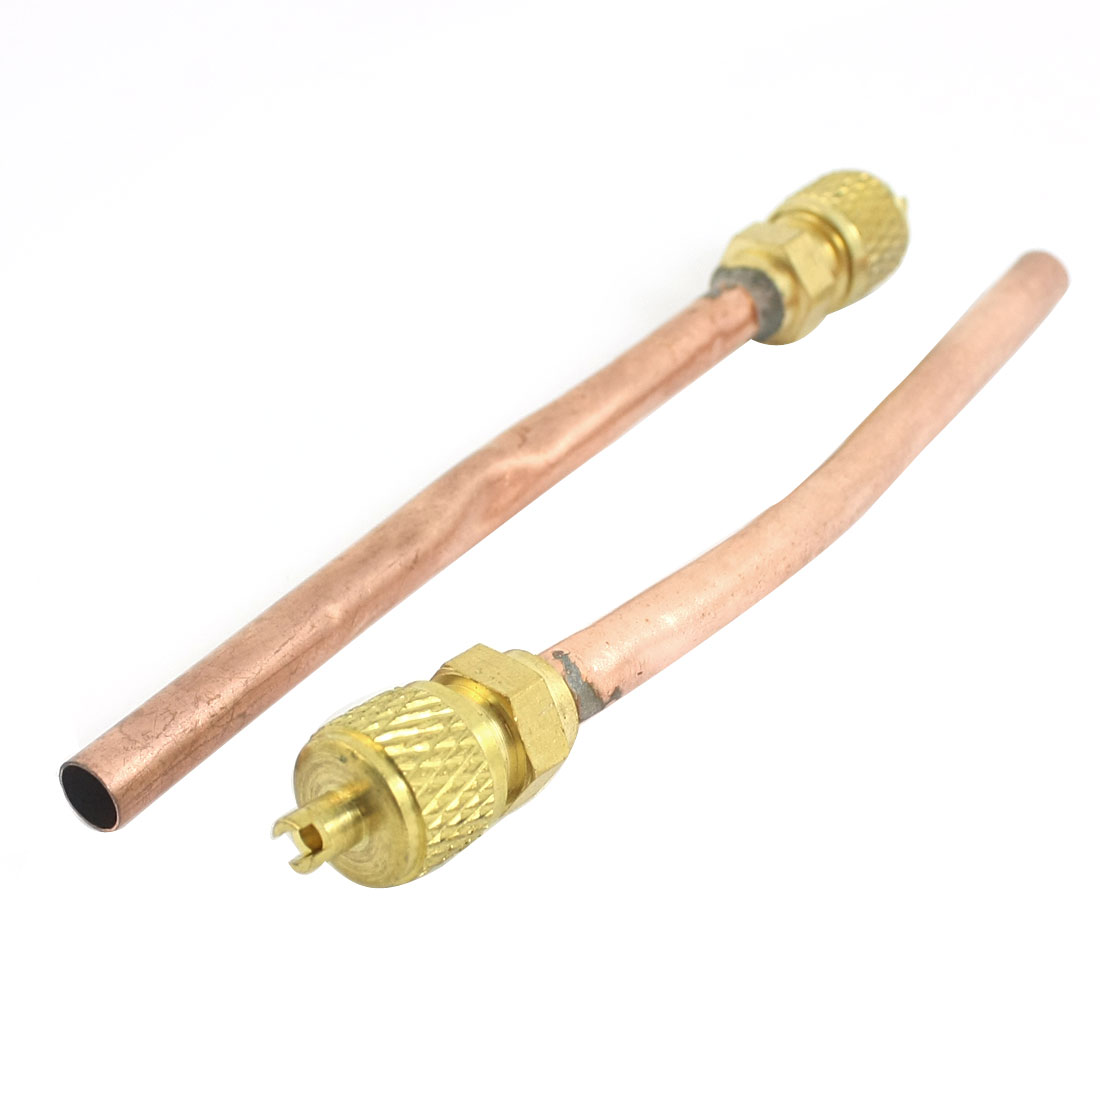 "2 Pcs 0.24"" Outer Dia Copper Tone Extension Tube Air Conditioner Refrigeration Access Valve"